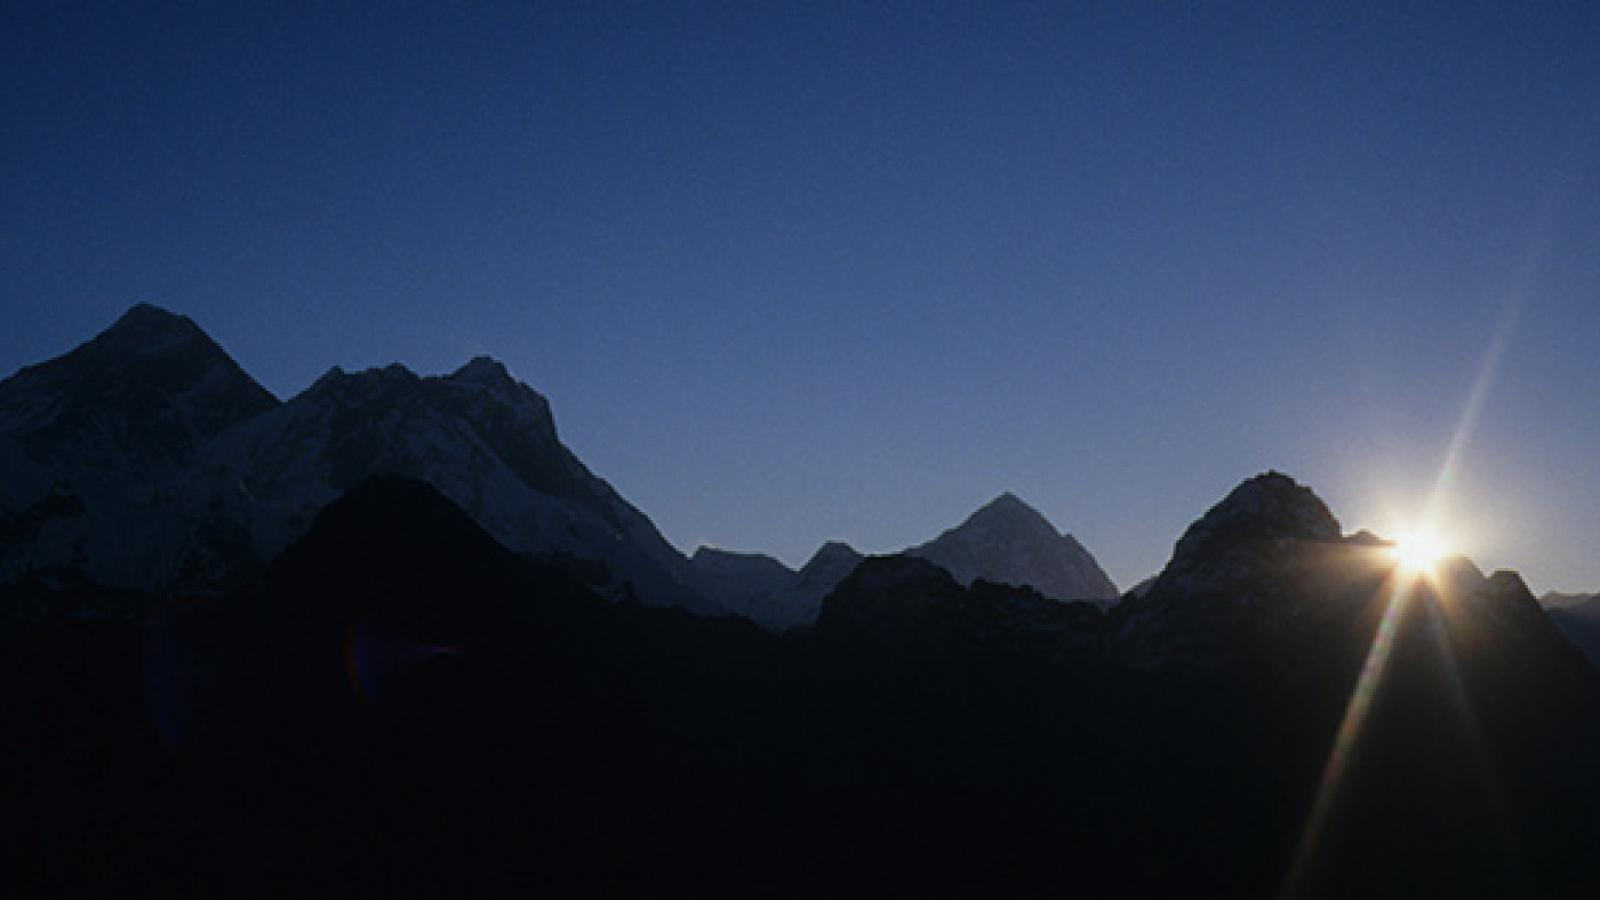 Sunrise over the Himalayas, Nepal